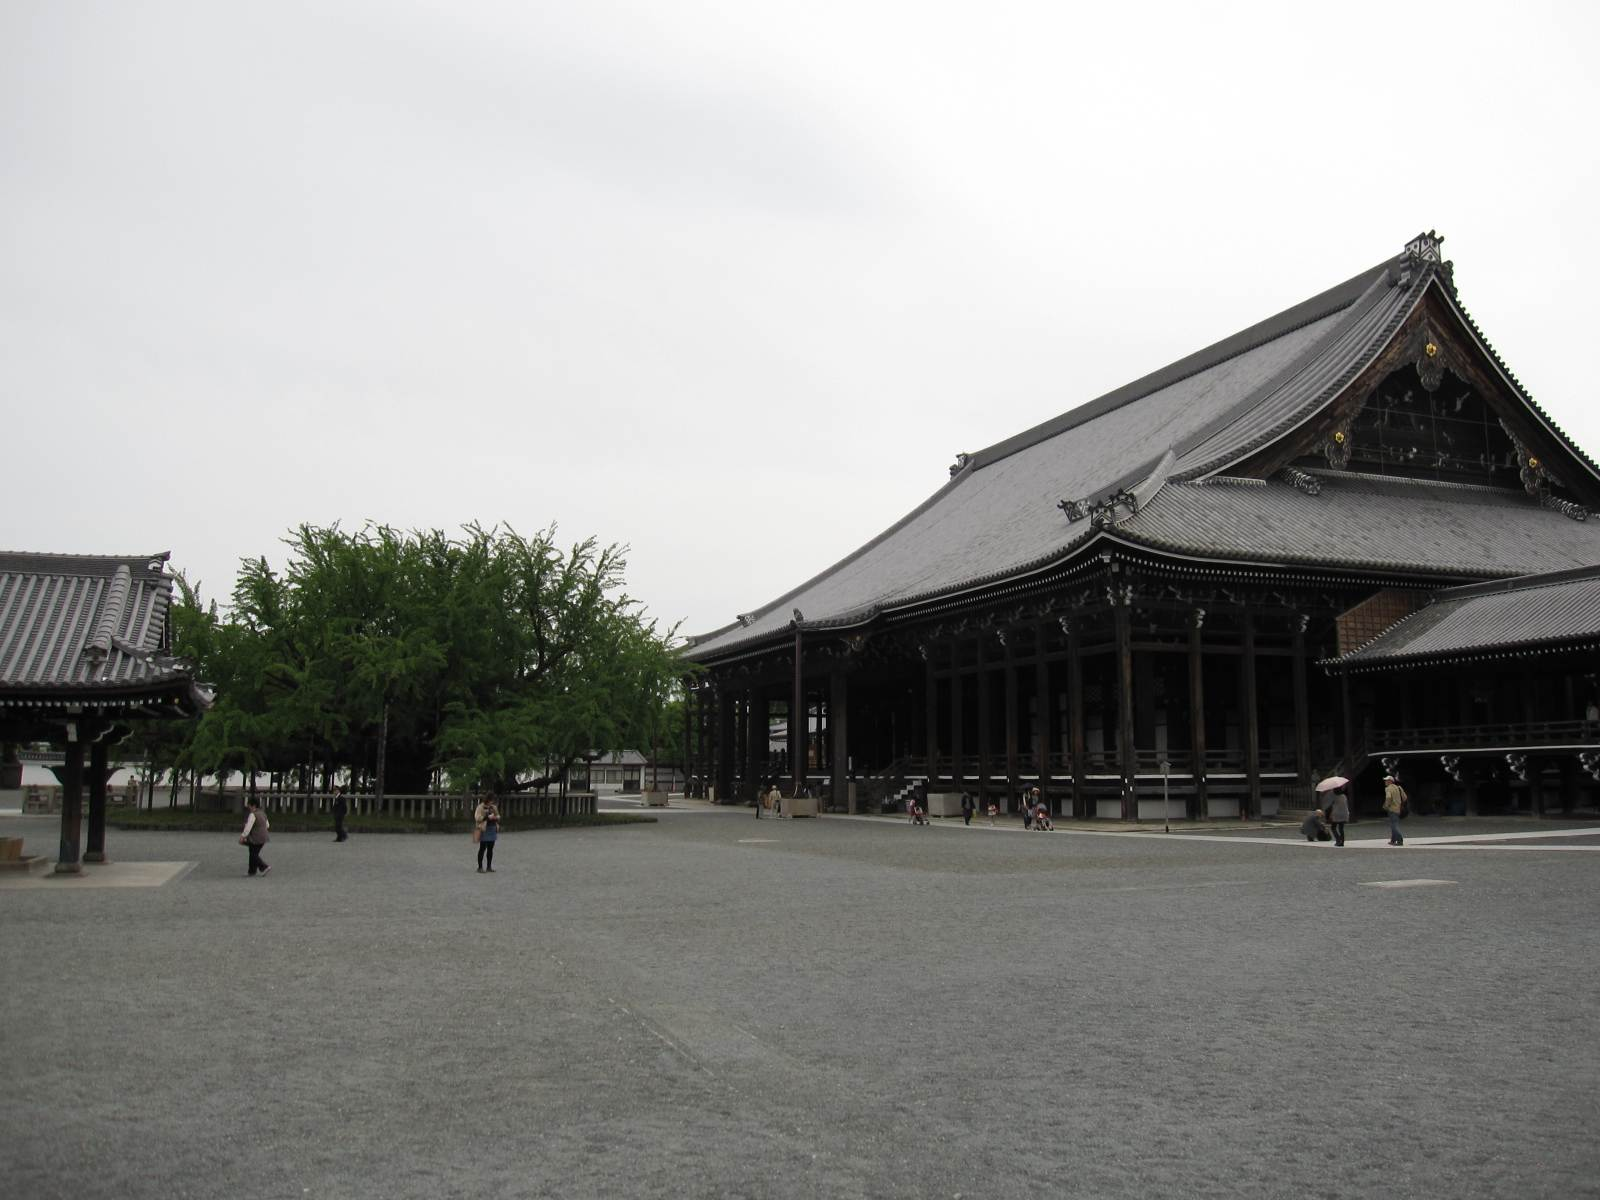 Kyoto travel guide area by area: Kyoto station area - youinJapan.net